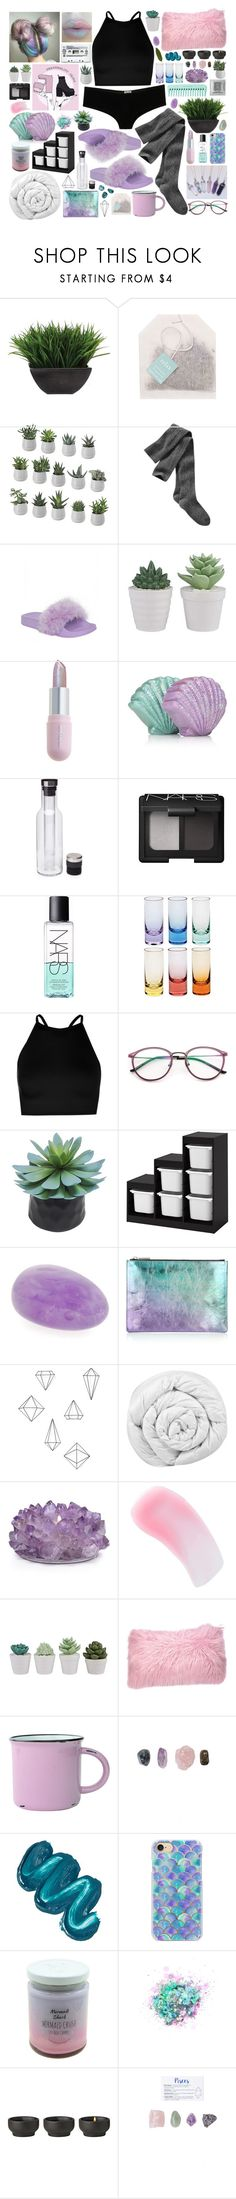 """Grimes ~ Genesis"" by wisteriablossom ❤ liked on Polyvore featuring Lux-Art Silks, Paper Source, Gap, Winky Lux, Menu, NARS Cosmetics, Moser, Boohoo, Room Essentials and Whistles"